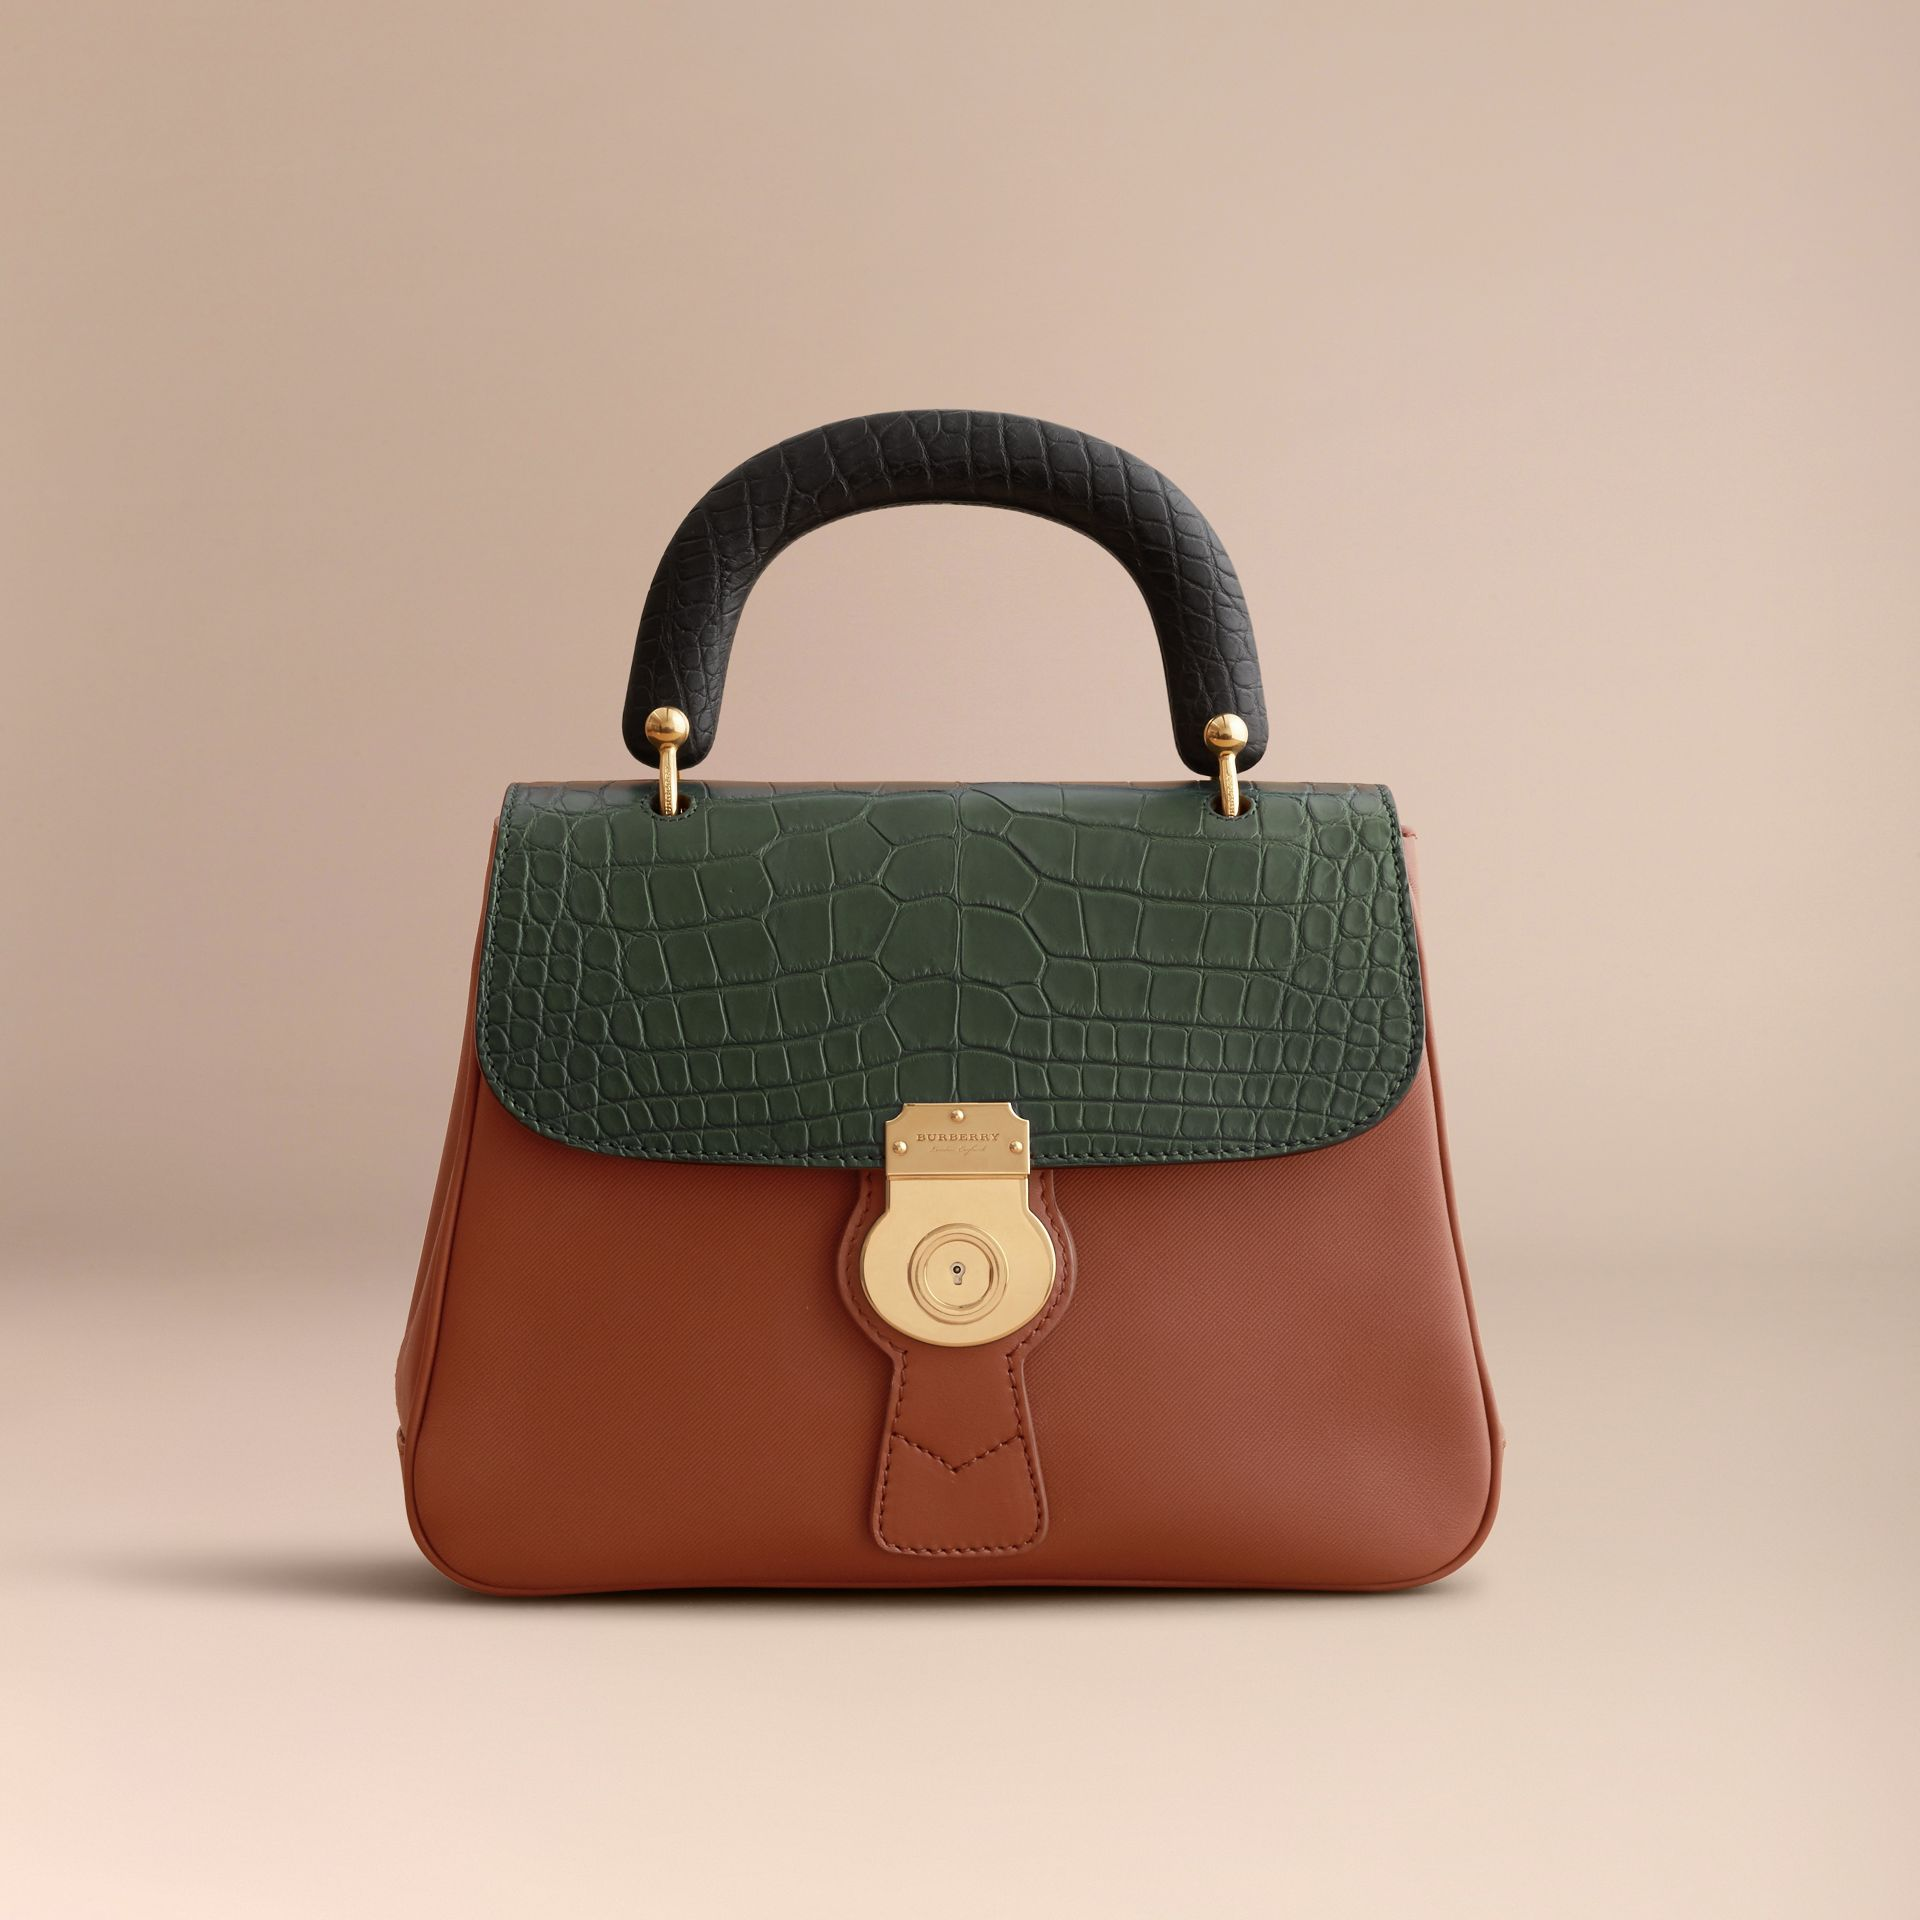 La borsa con manico DK88 media con alligatore (Marroncino/verde Foresta Scuro) - Donna | Burberry - immagine della galleria 7